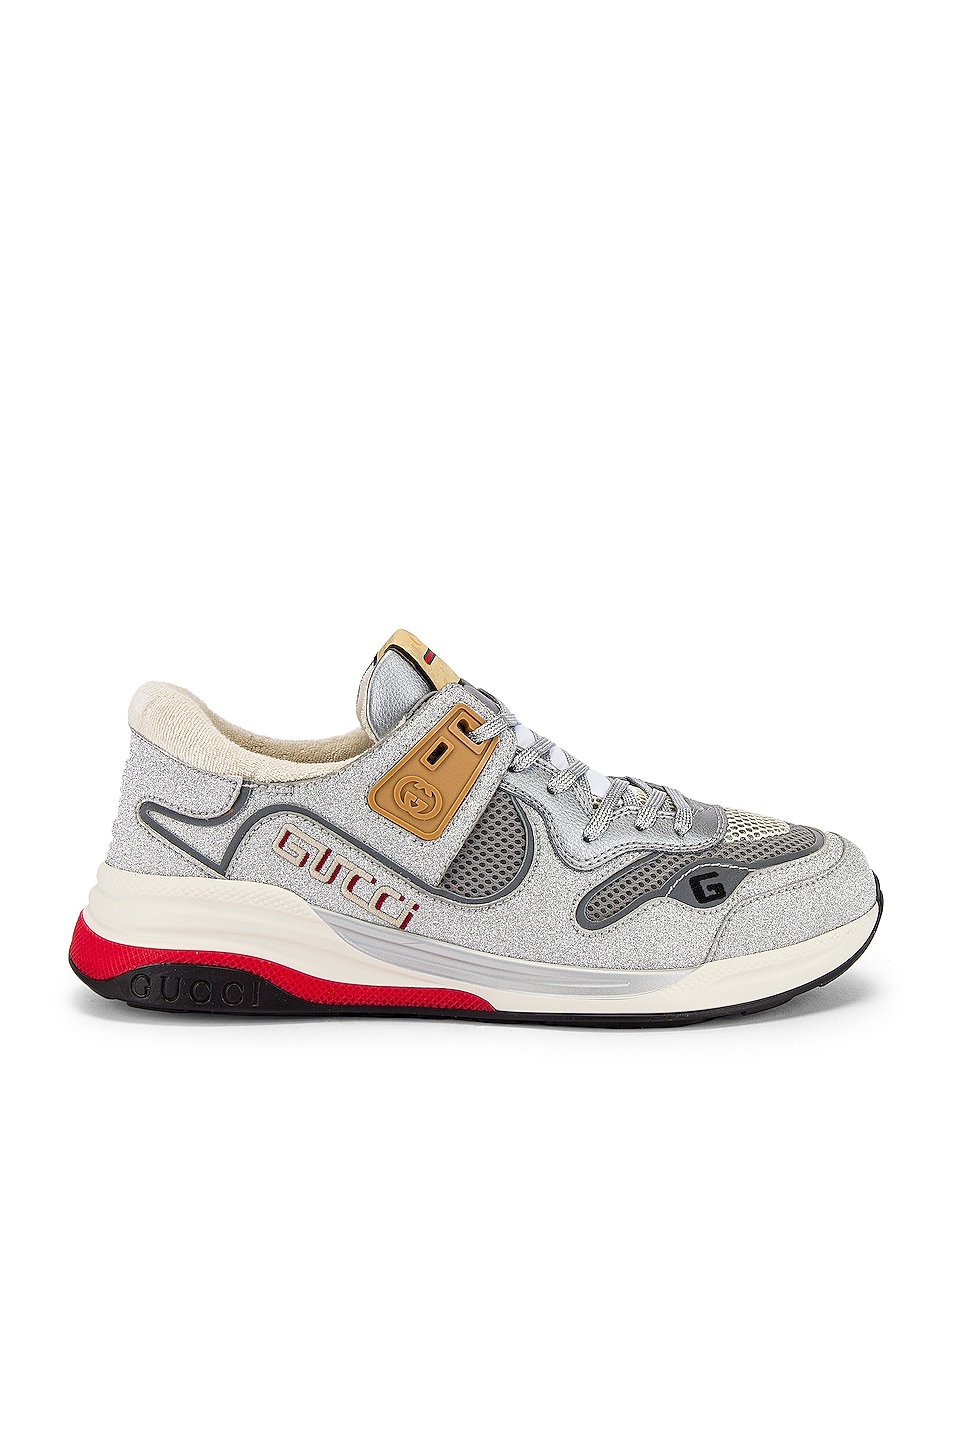 Image 2 of Gucci G Line Low Top Sneaker in Silver & White